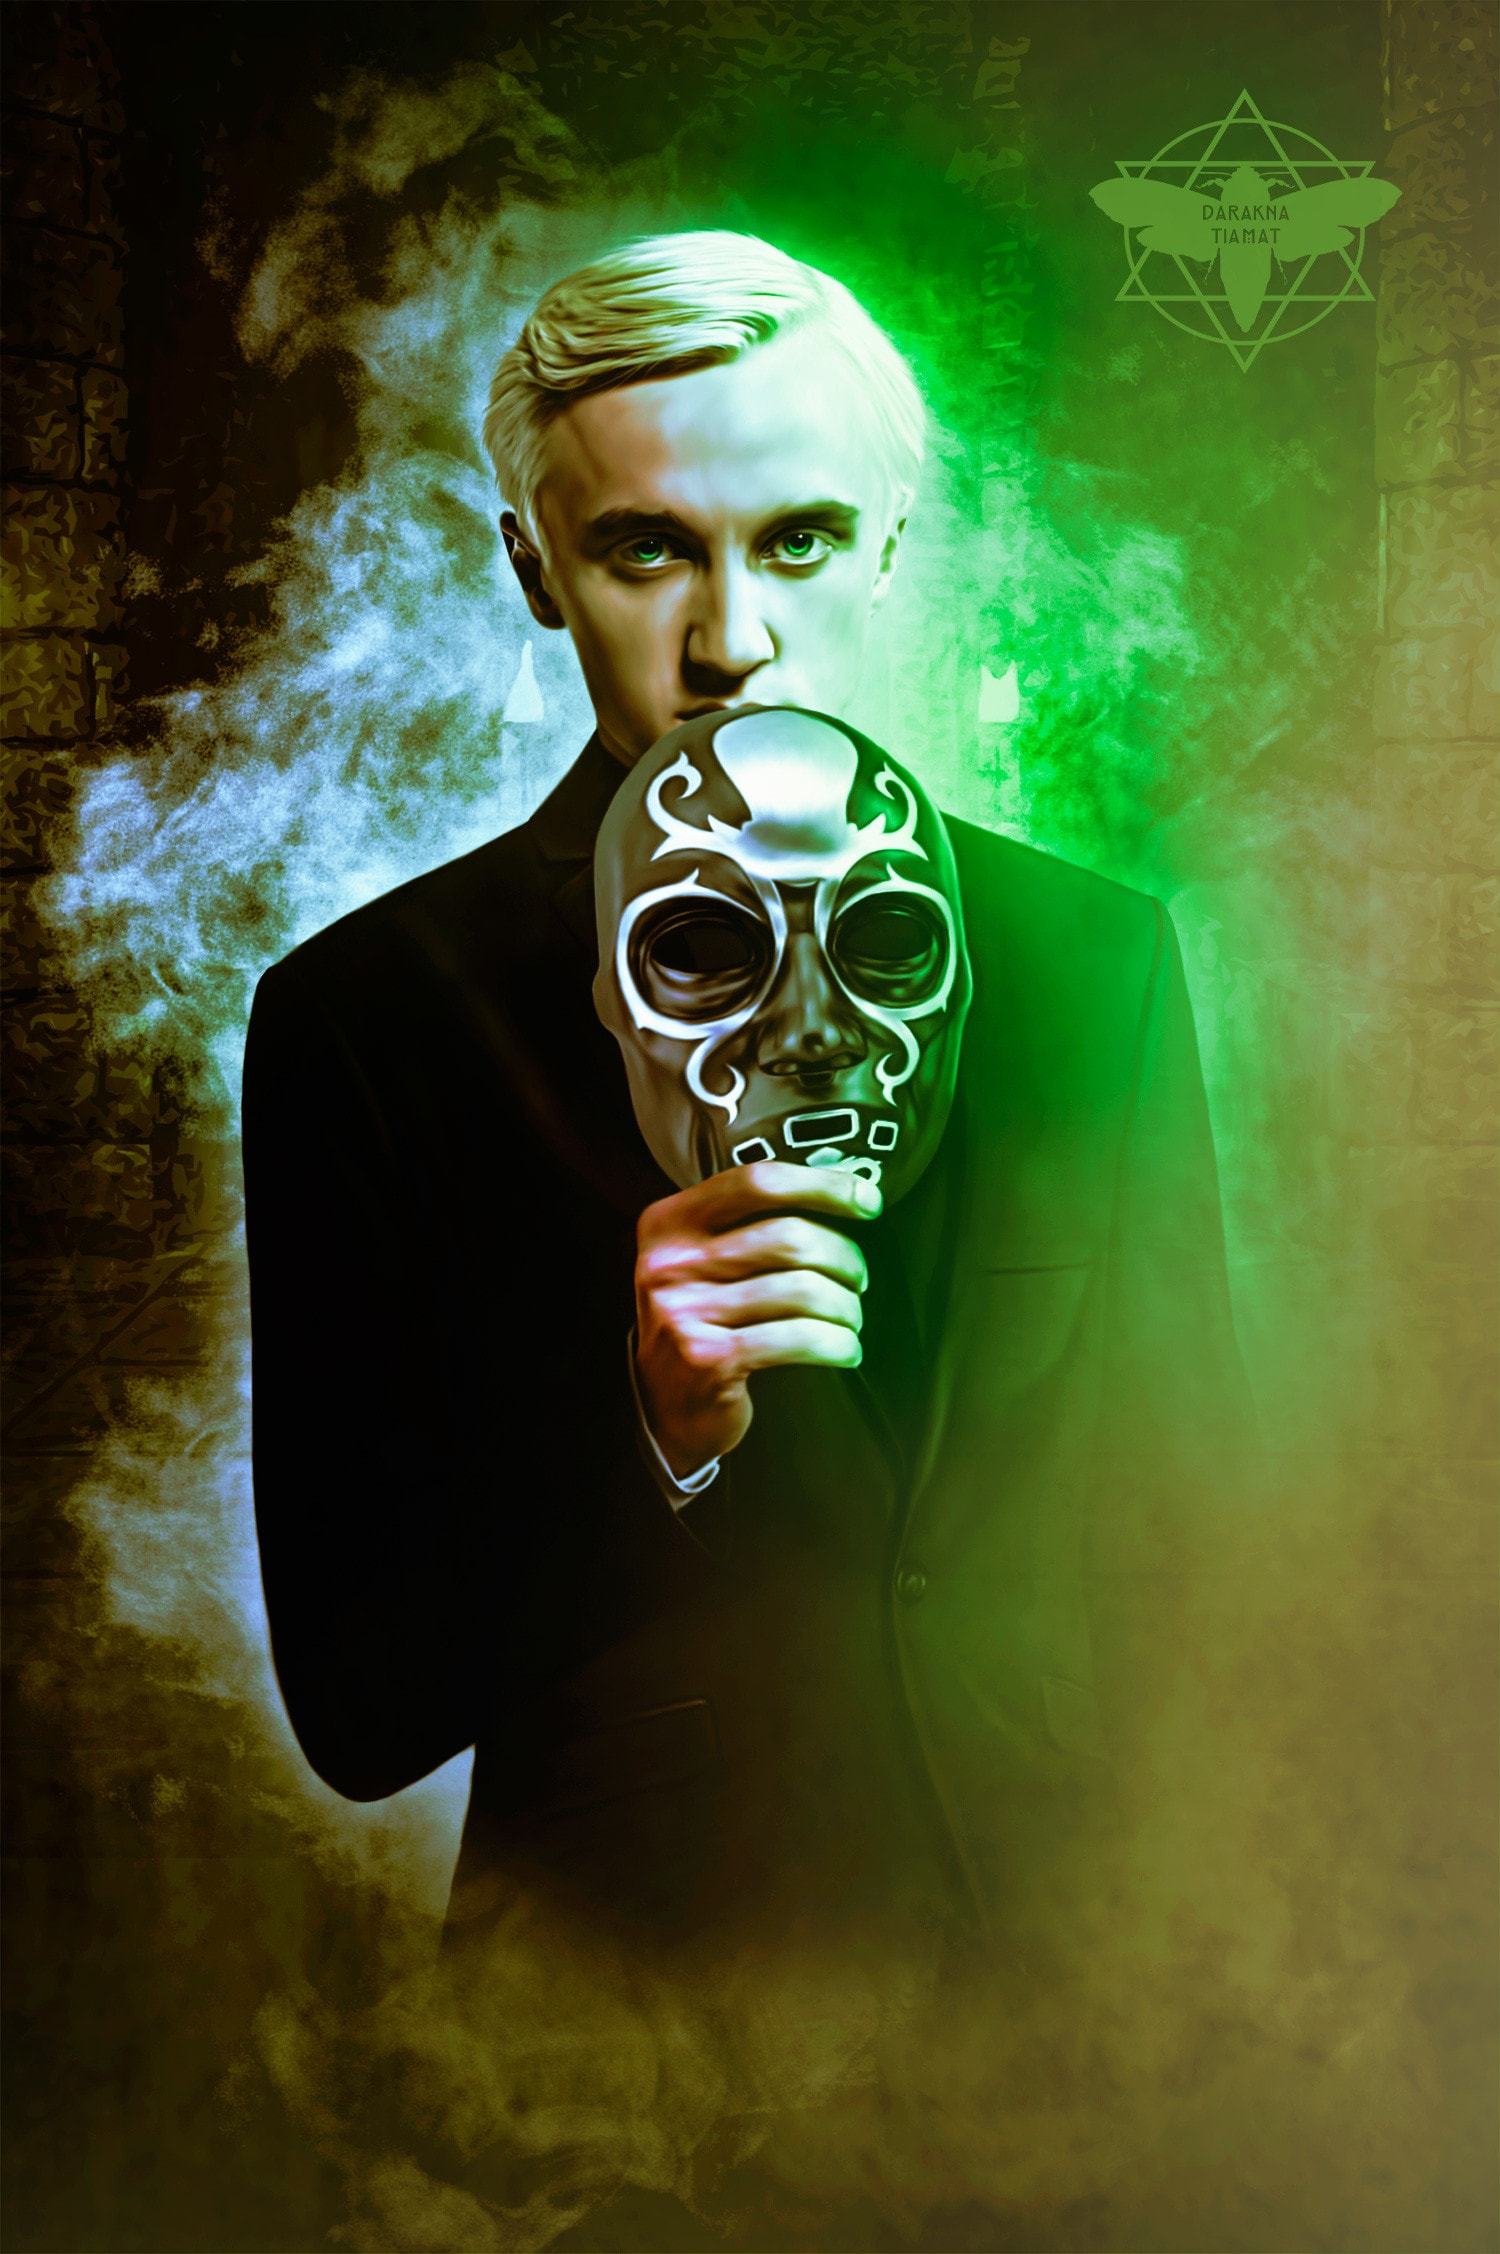 Draco Malfoy Iphone Wallpapers